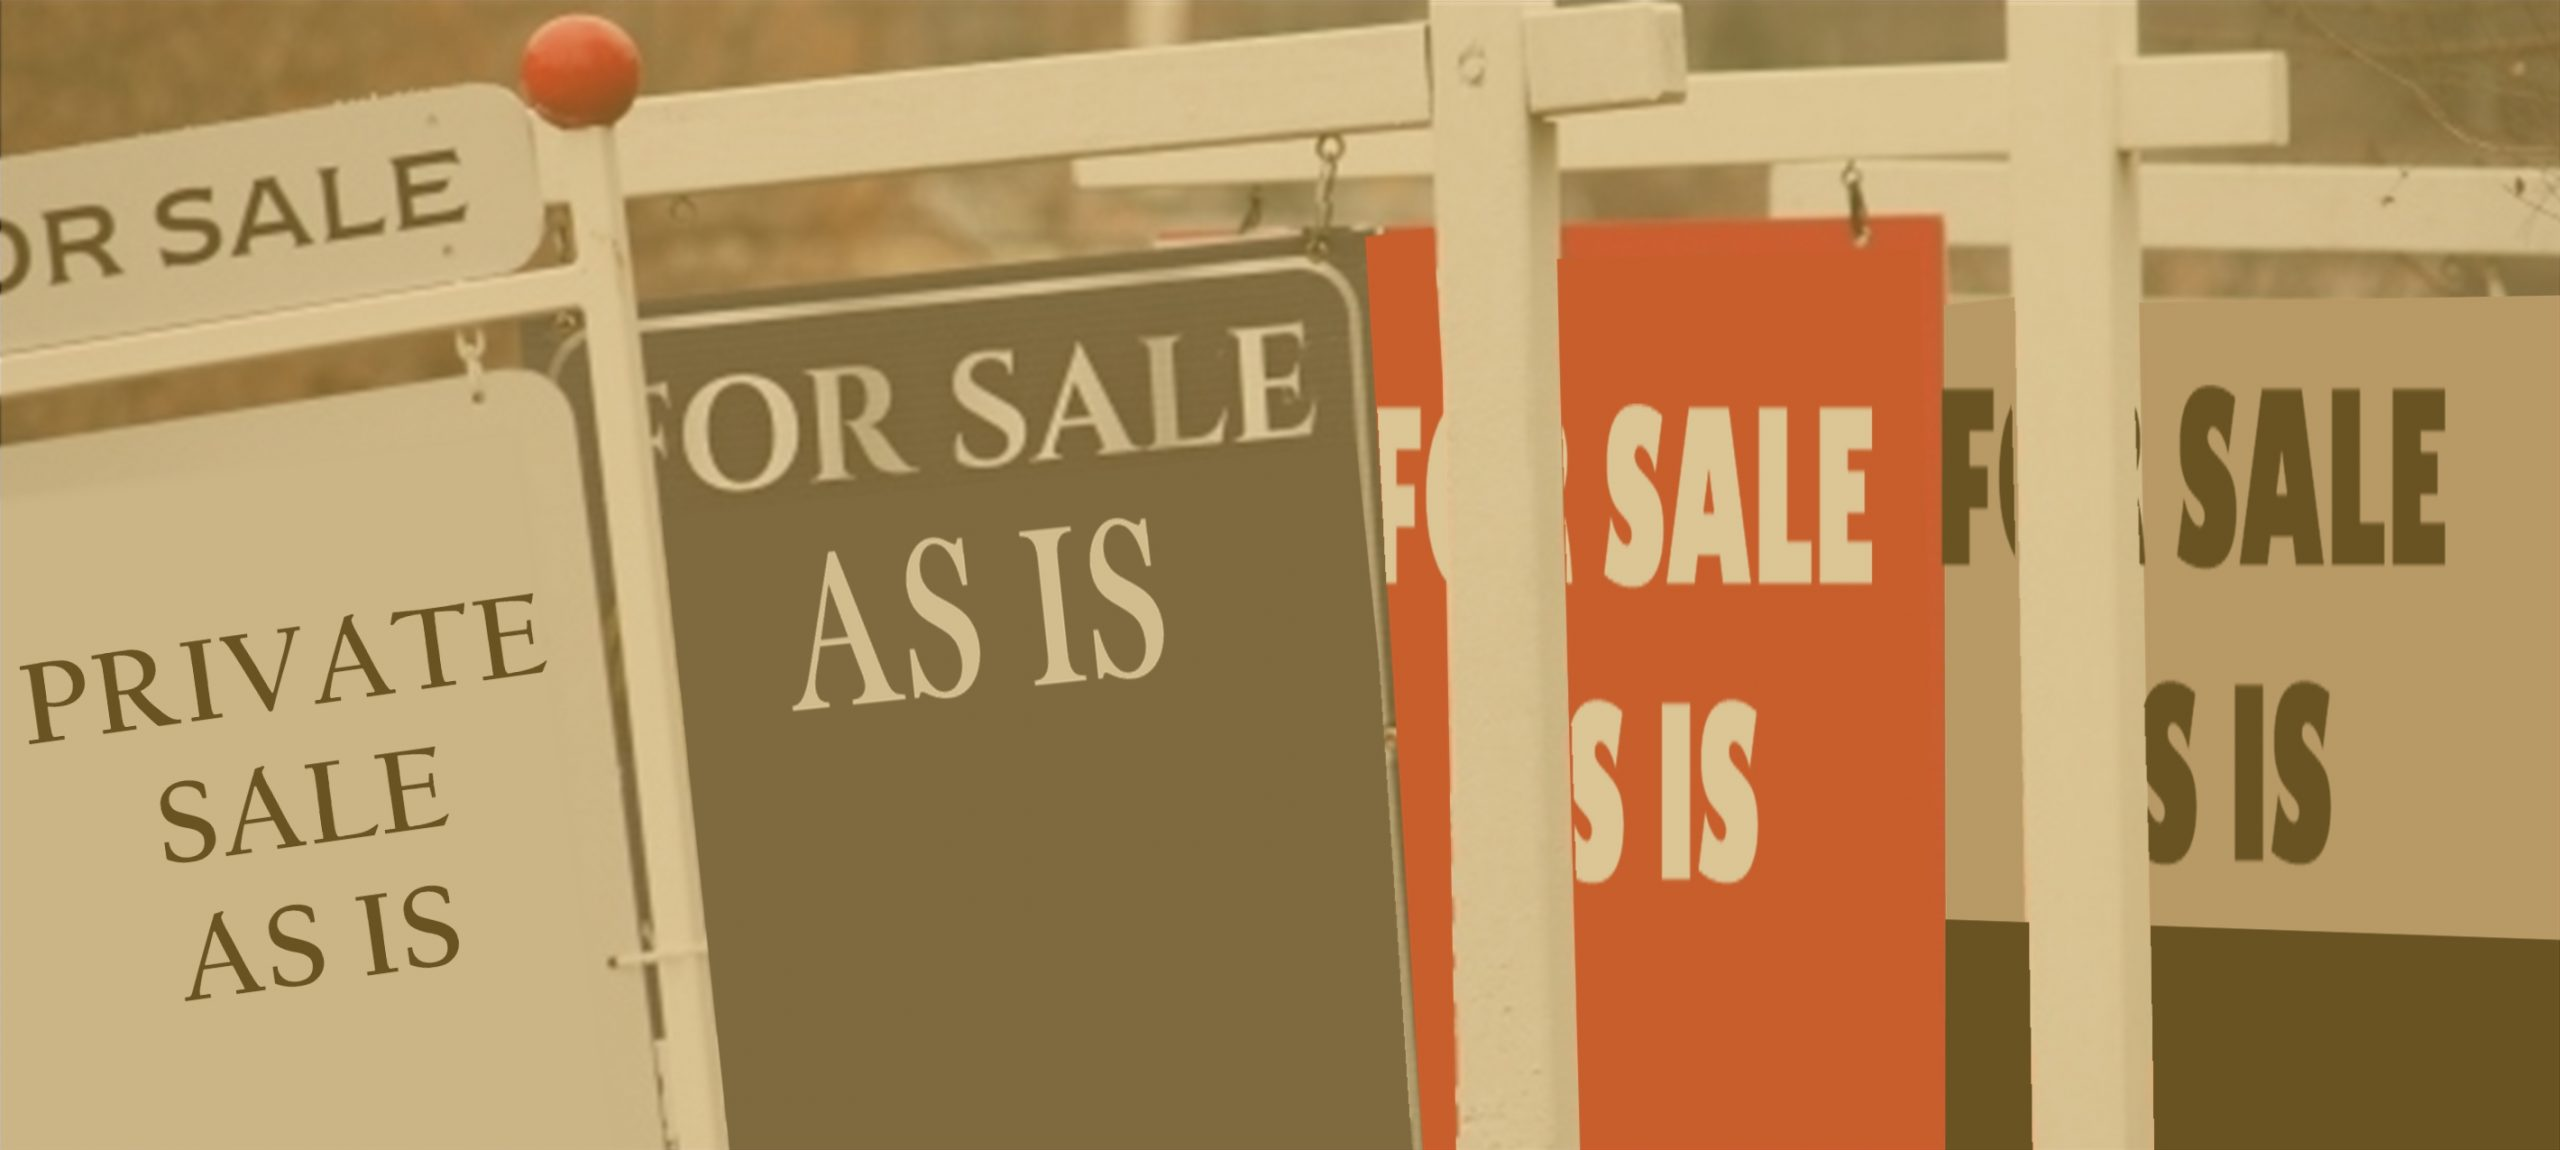 As Is Property Sale – what it means and doesn't